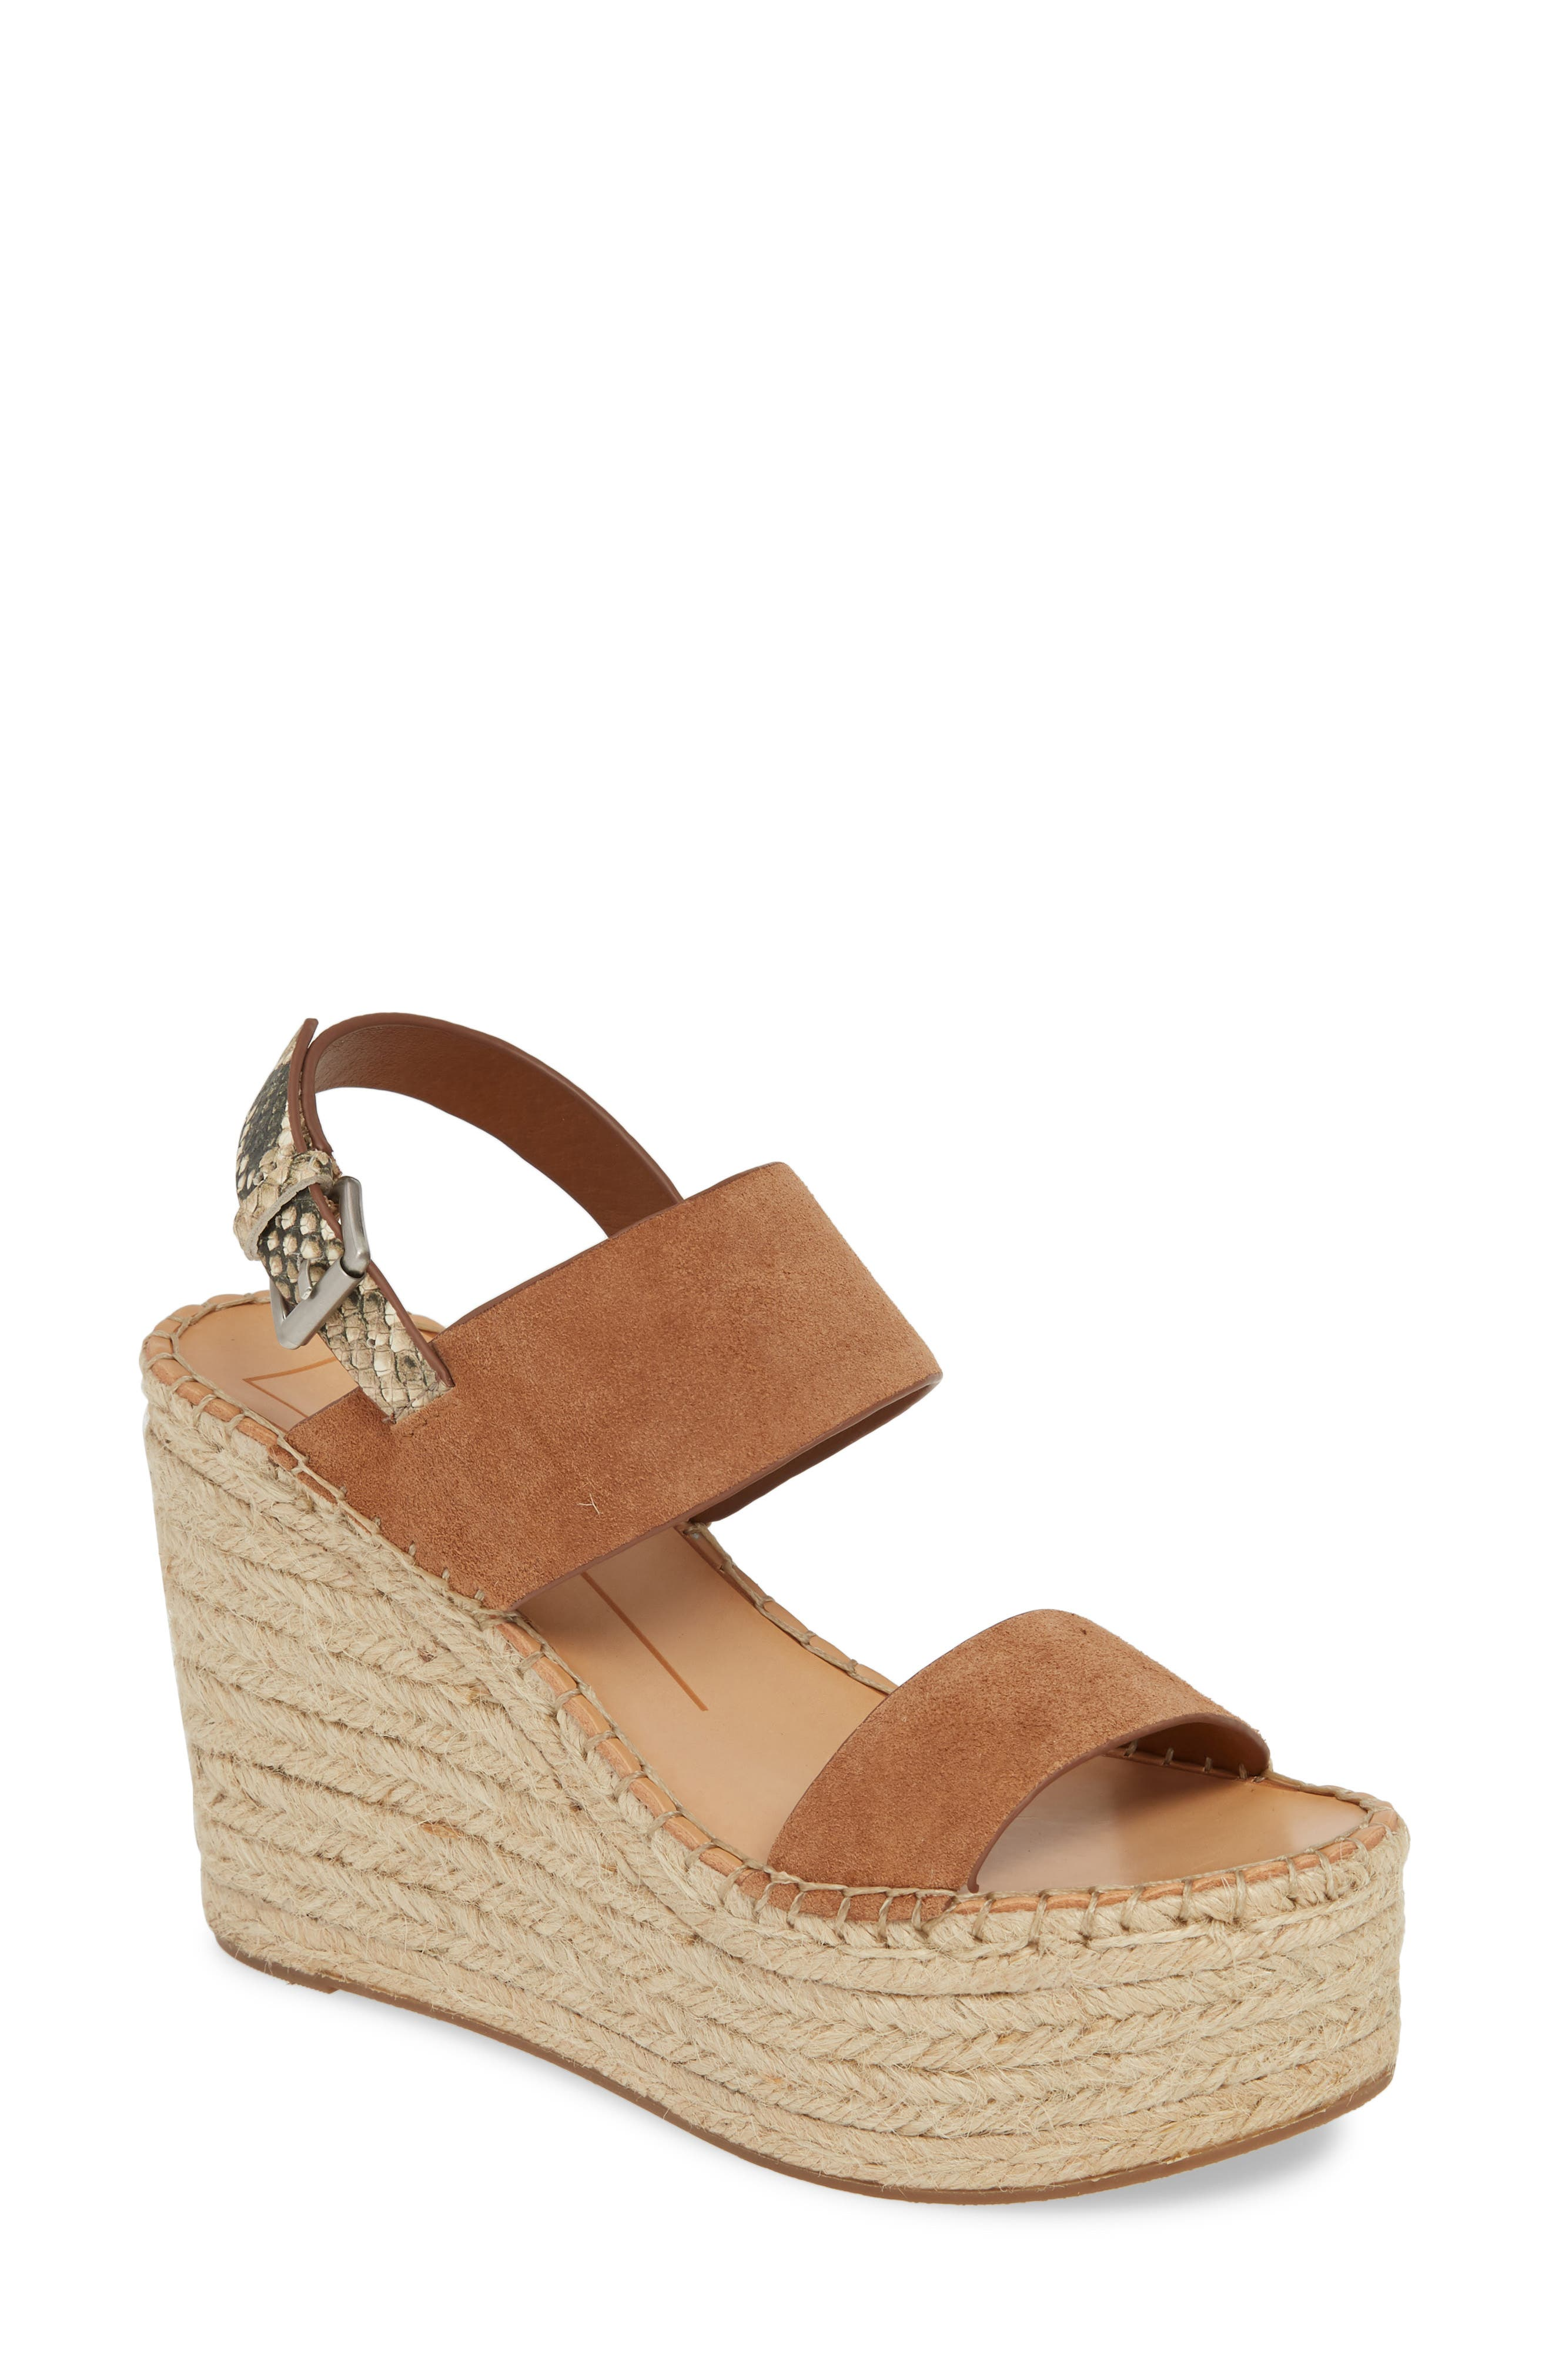 DOLCE VITA Spiro Platform Wedge Sandal, Main, color, BROWN SUEDE